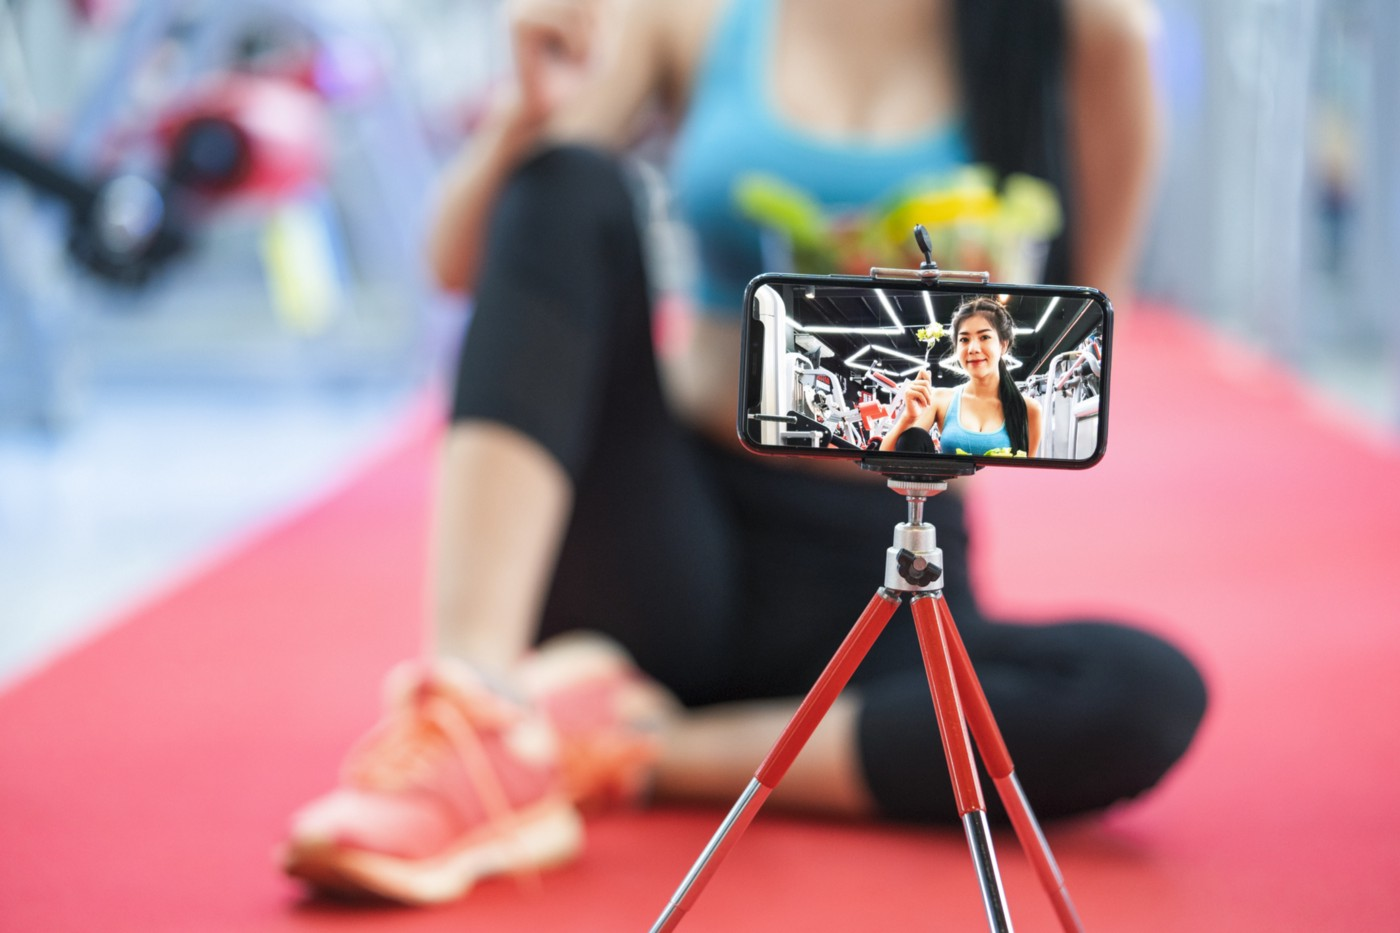 A photo of a woman recording herself doing a workout using her smartphone on a tripod.